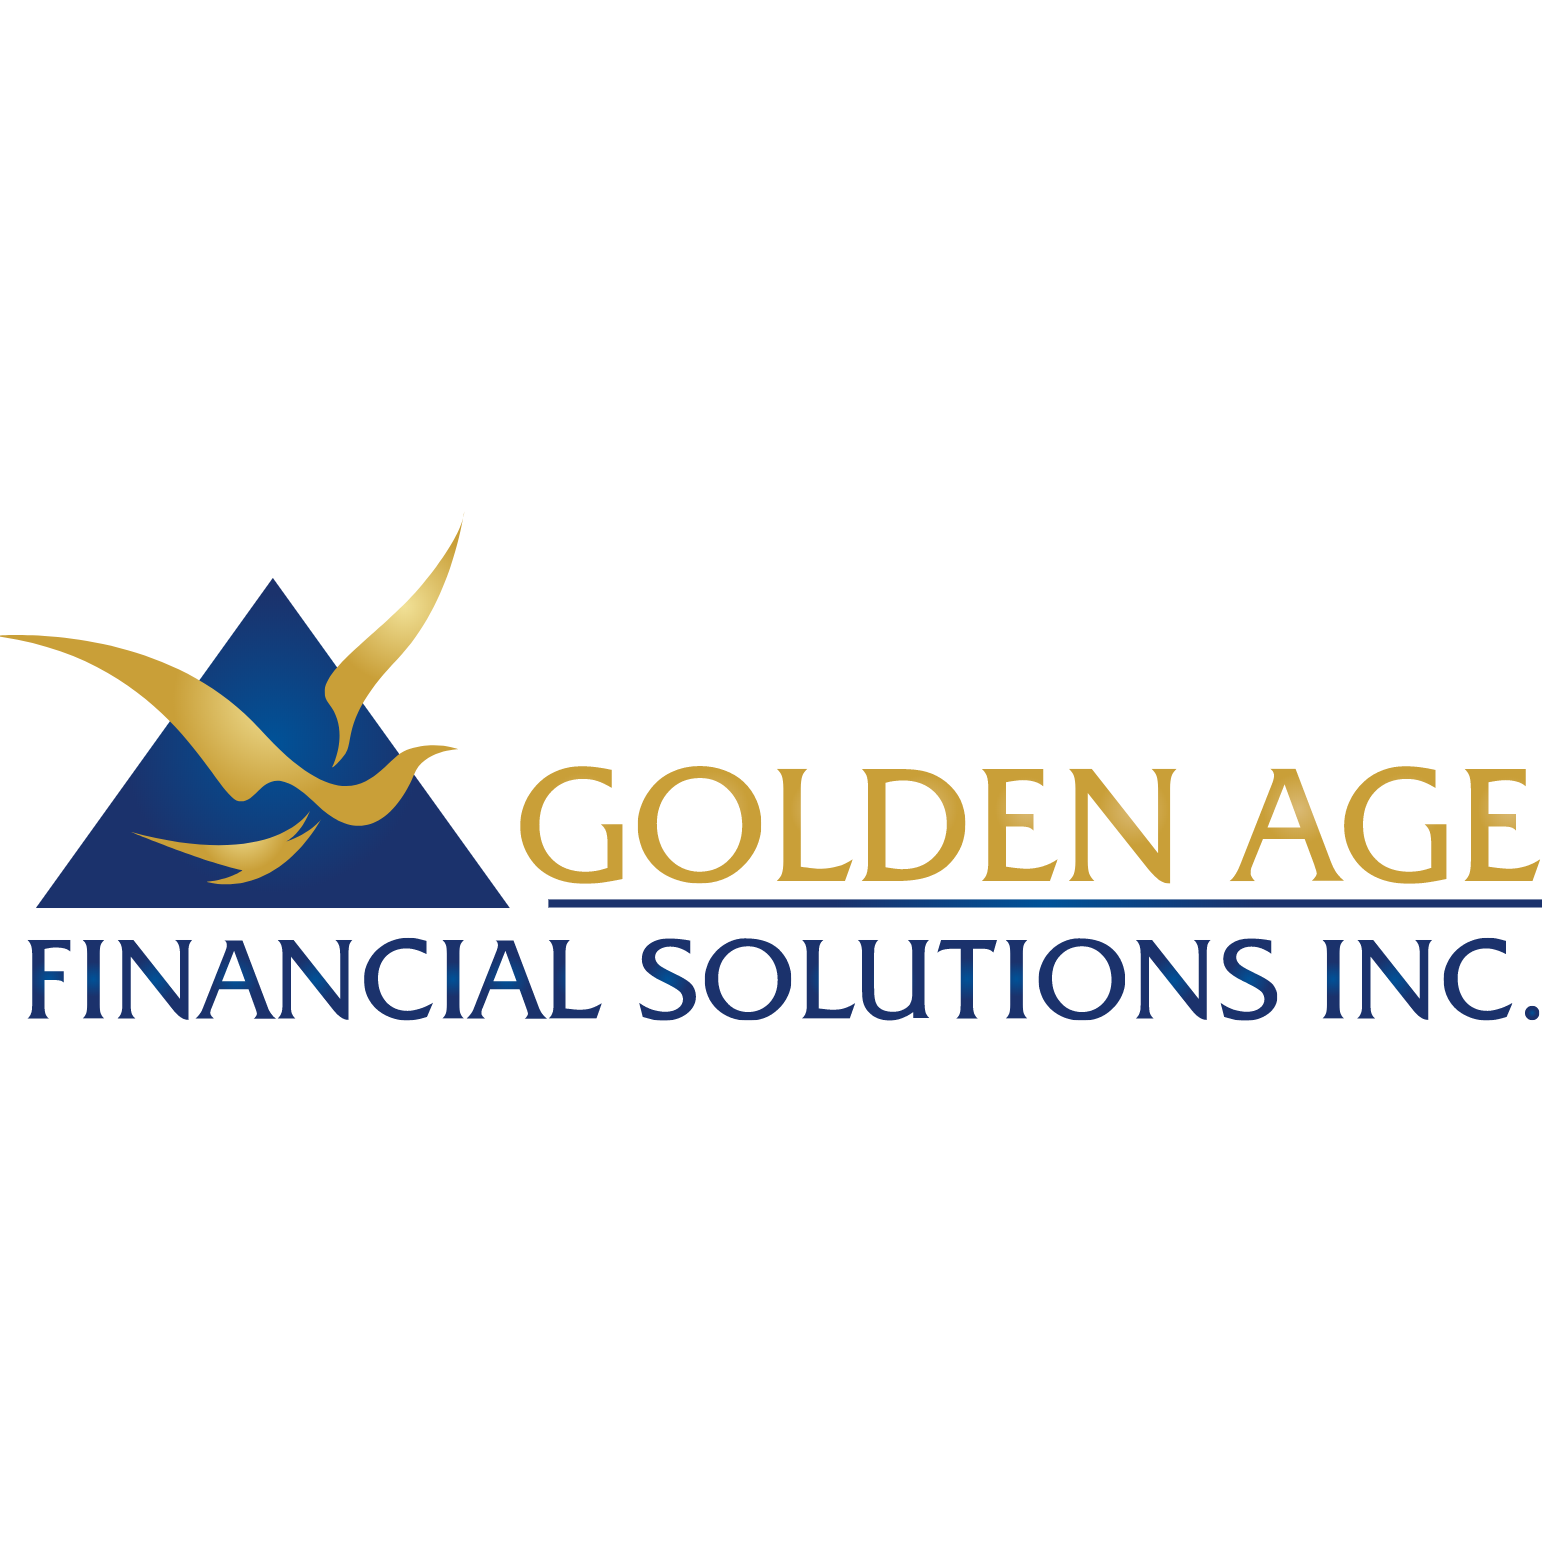 Golden Age Financial Solutions, Inc.